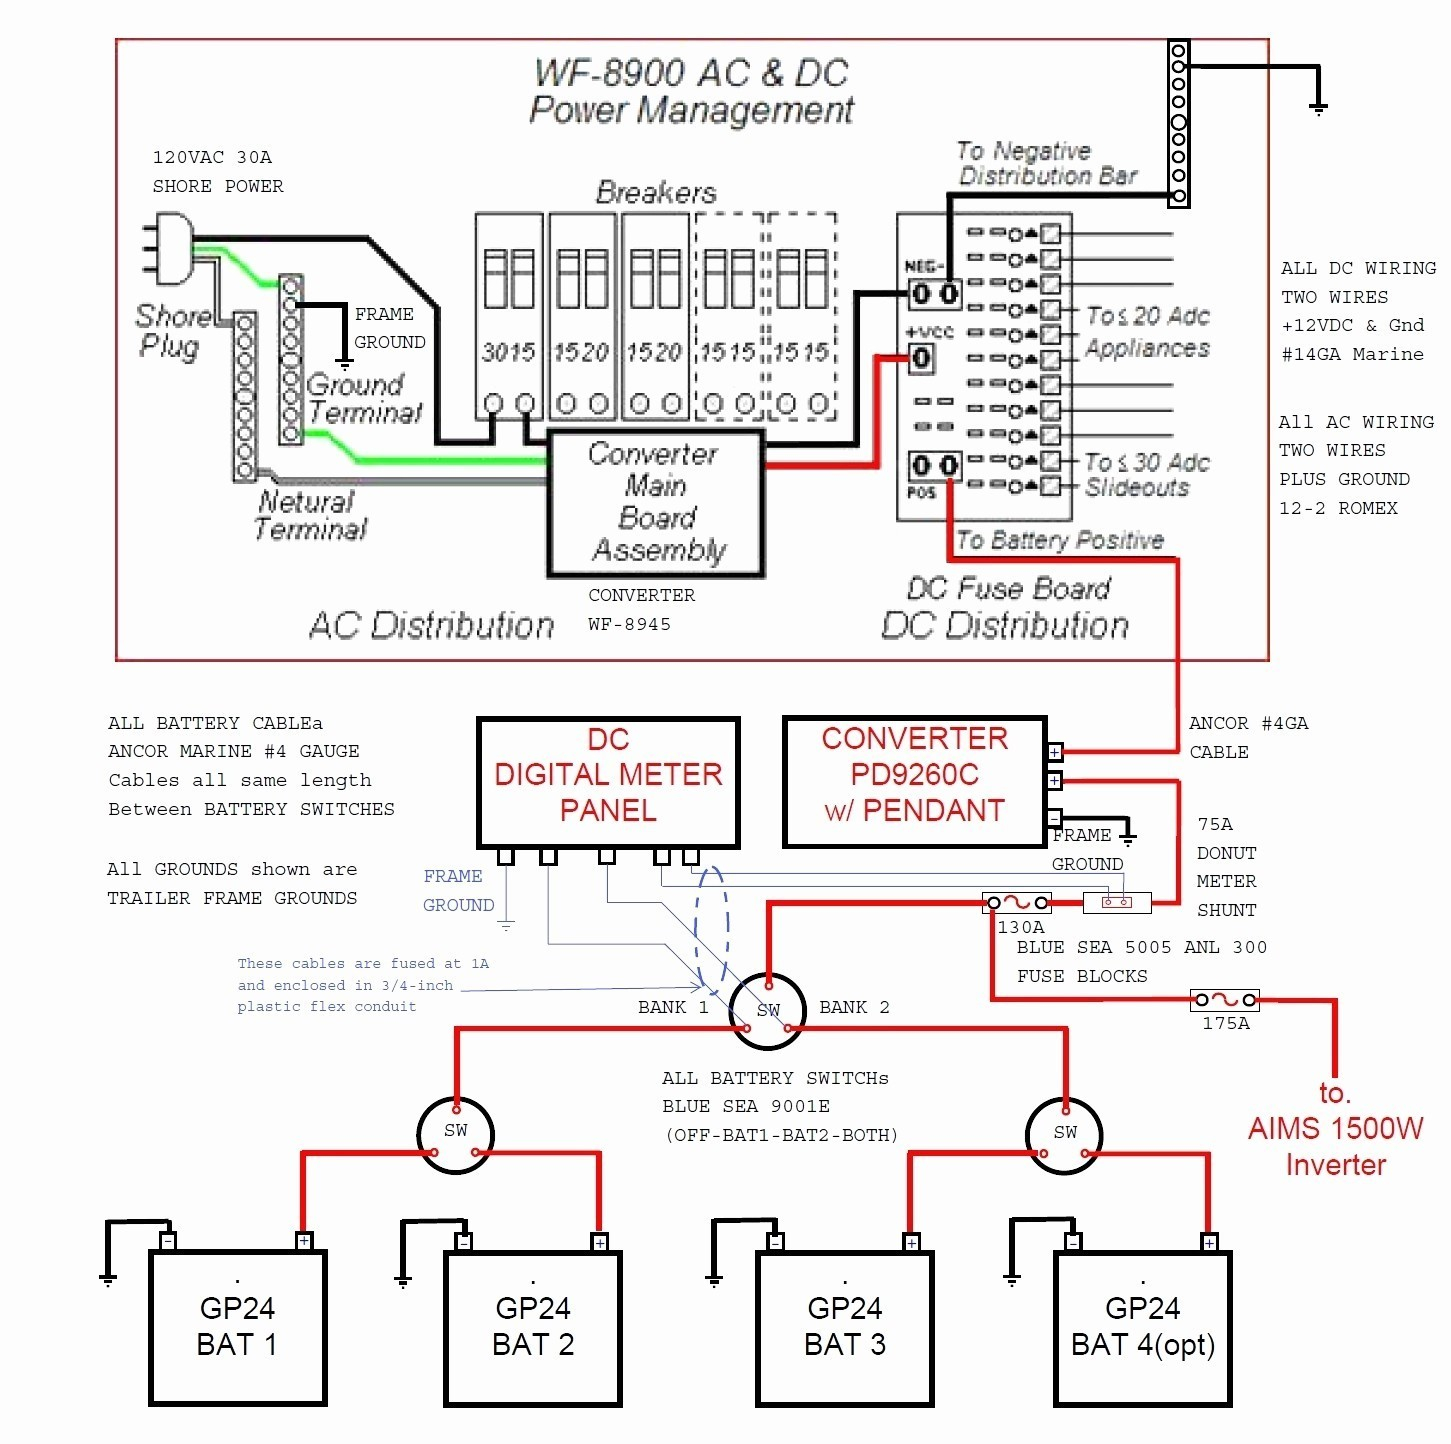 Jayco Motorhome Wiring Diagram - 7 Point Wiring Harness for Wiring Diagram  Schematics | Tv Wiring Diagram Jayco Jay Flight |  | Wiring Diagram Schematics